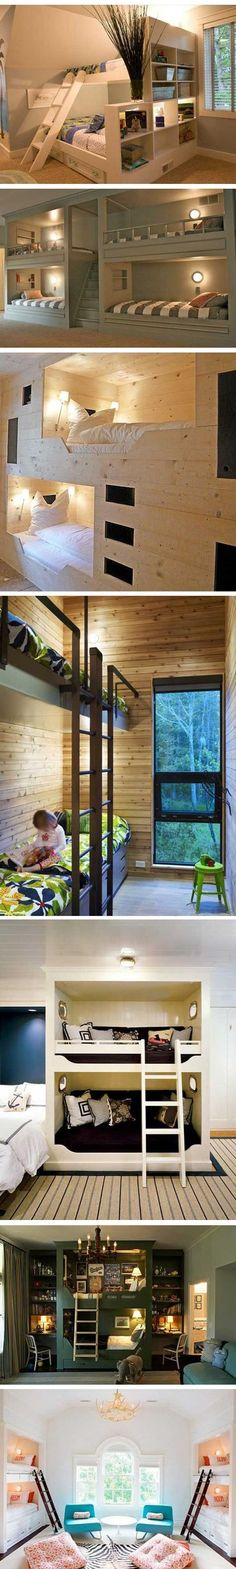 Funny pictures about The Coolest Bunk Beds. Oh, and cool pics about The Coolest Bunk Beds. Also, The Coolest Bunk Beds photos. Awesome Bedrooms, Cool Rooms, Dream Rooms, Dream Bedroom, Bedroom Bed, Extra Bedroom, Cool Bunk Beds, Cool Kids Beds, Murphy Bunk Beds